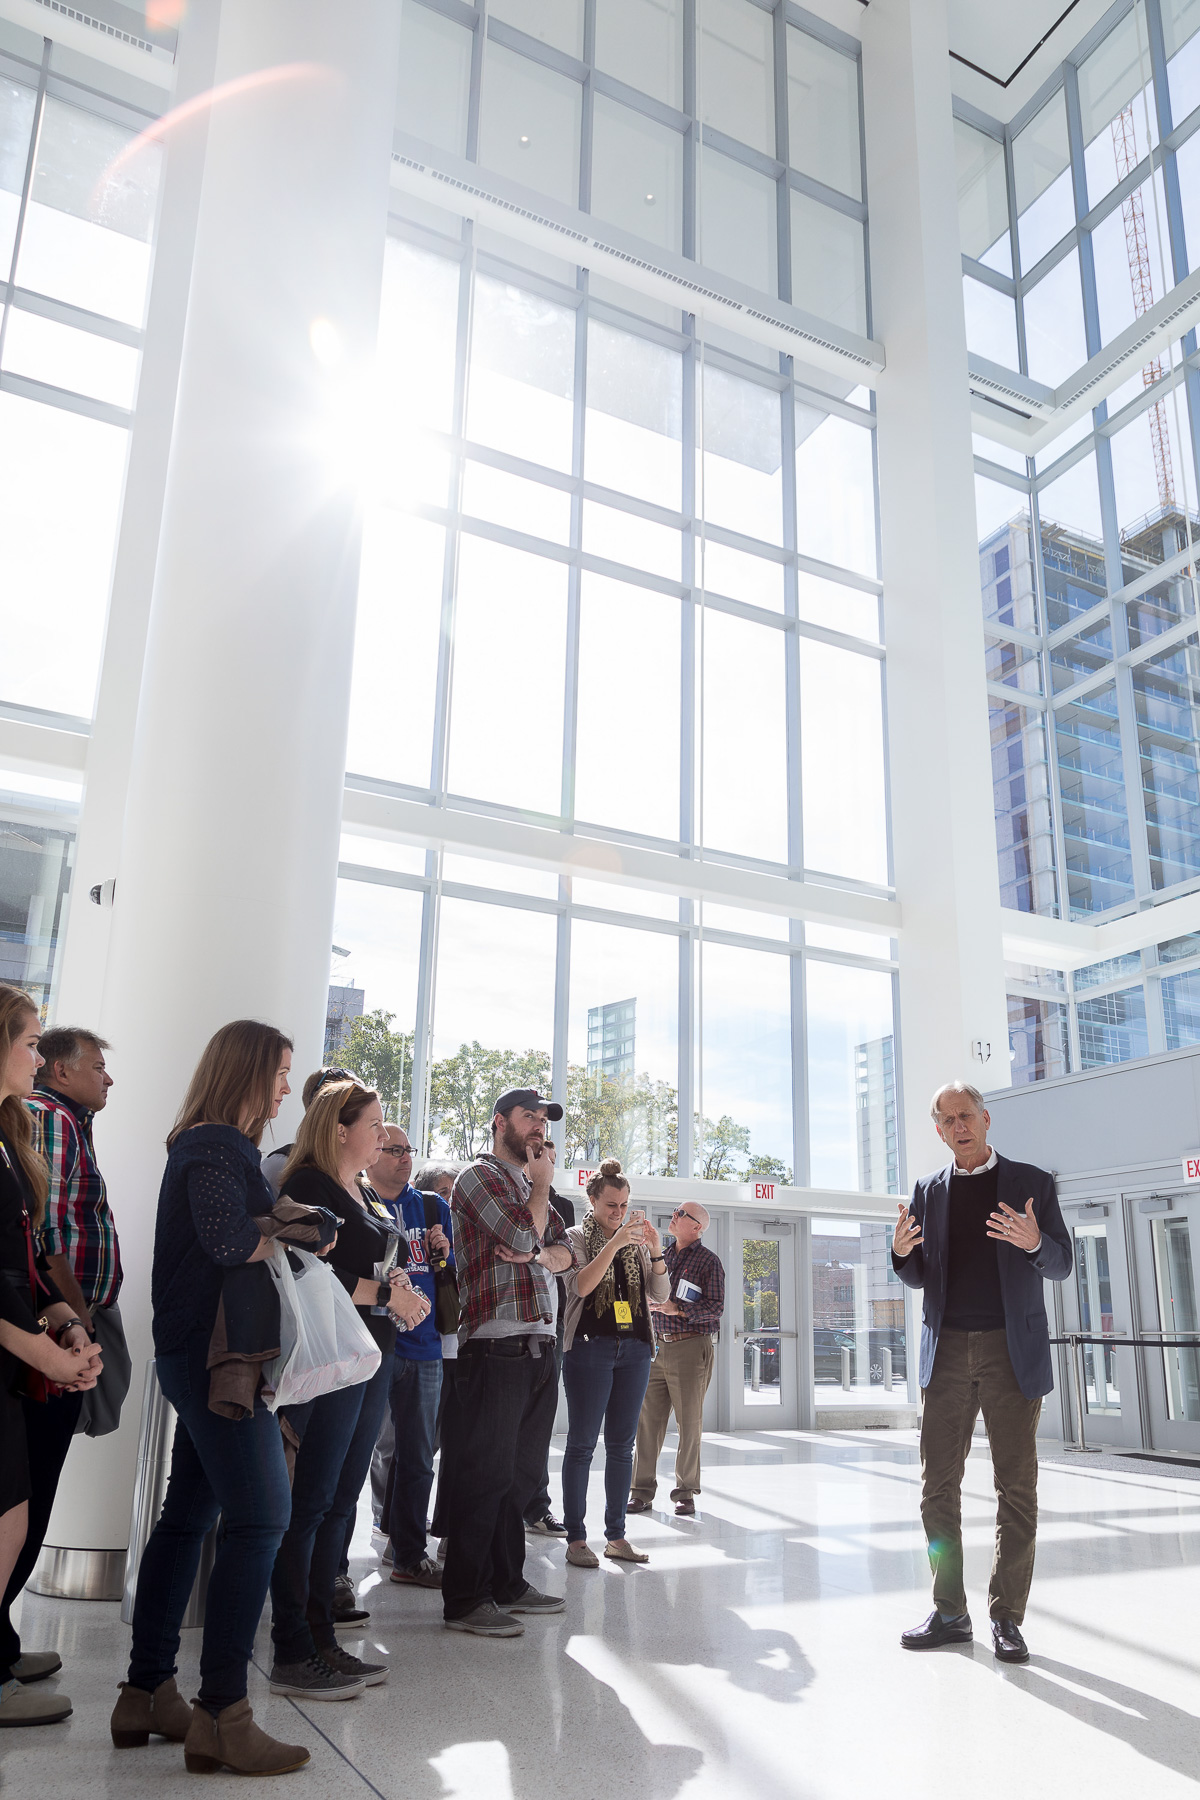 Mitchell Hirsch, principal architect for Pelli Clarke Pelli Architects, speaks to attendees in the atrium of Wintrust Arena during a sneak peek tour. (DePaul University/Jeff Carrion)